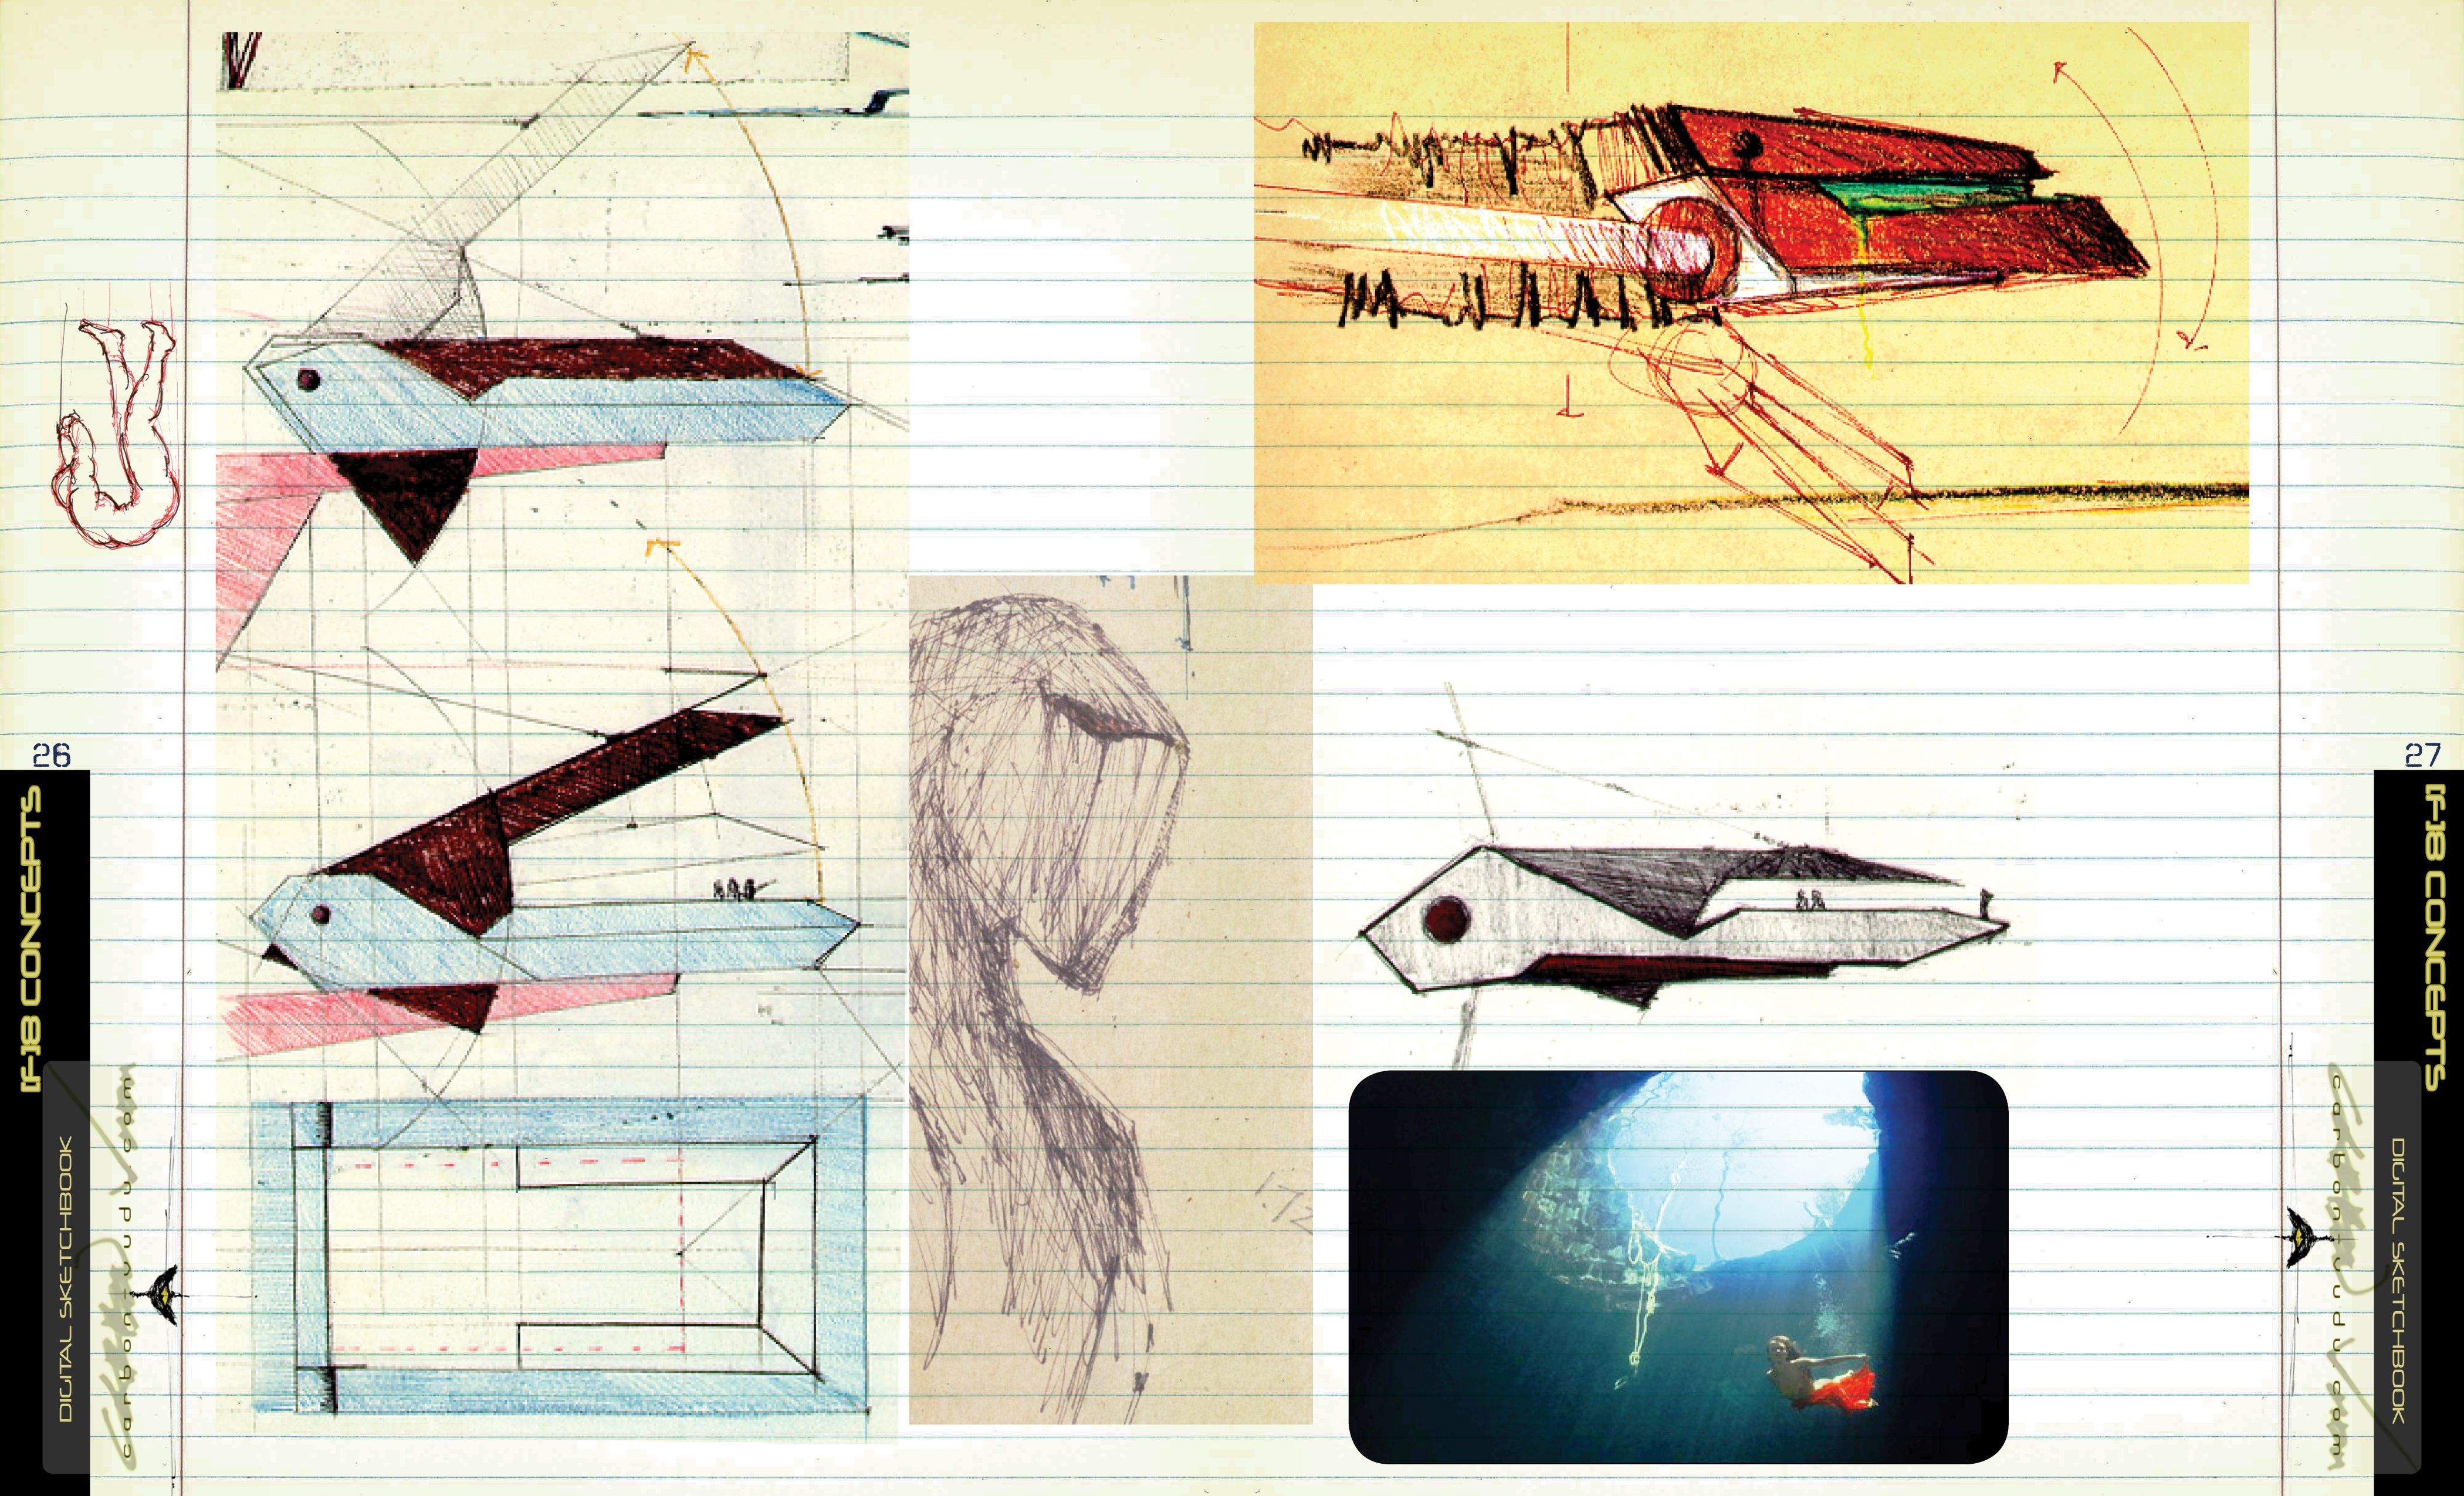 More architectural probes from the digital sketch